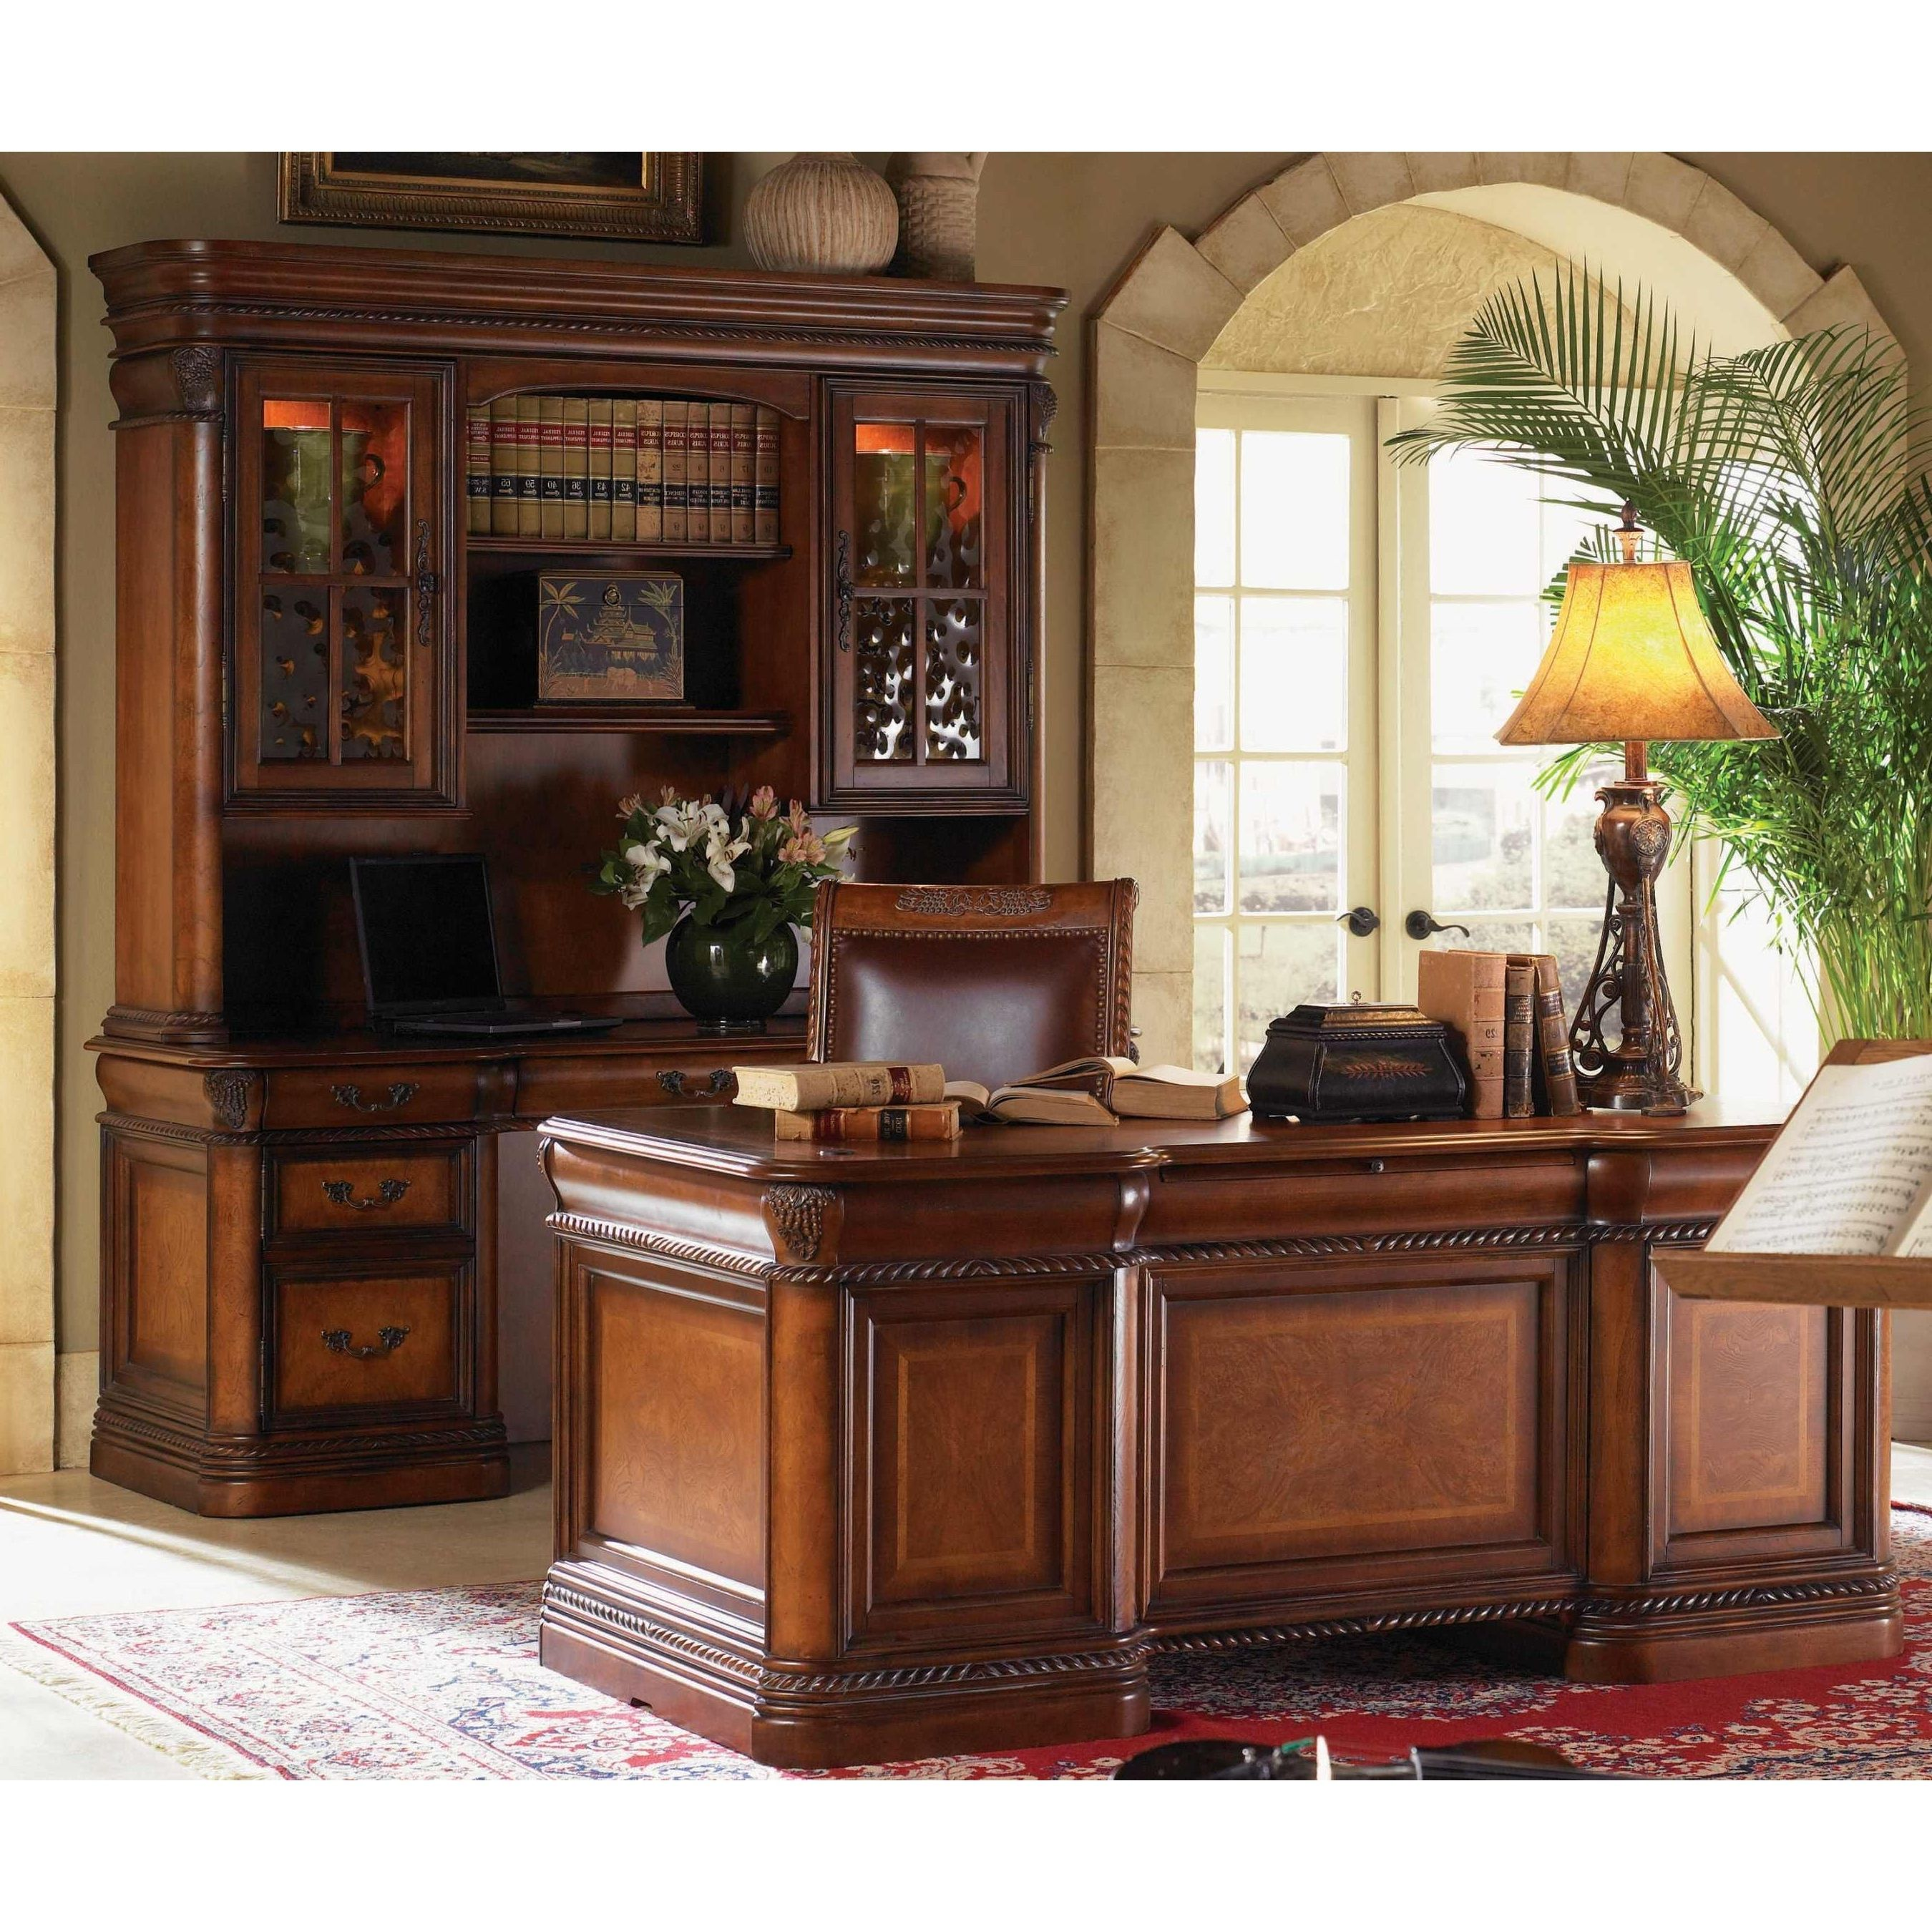 Luxury office furniture home office furniture luxury home office desk and chair also